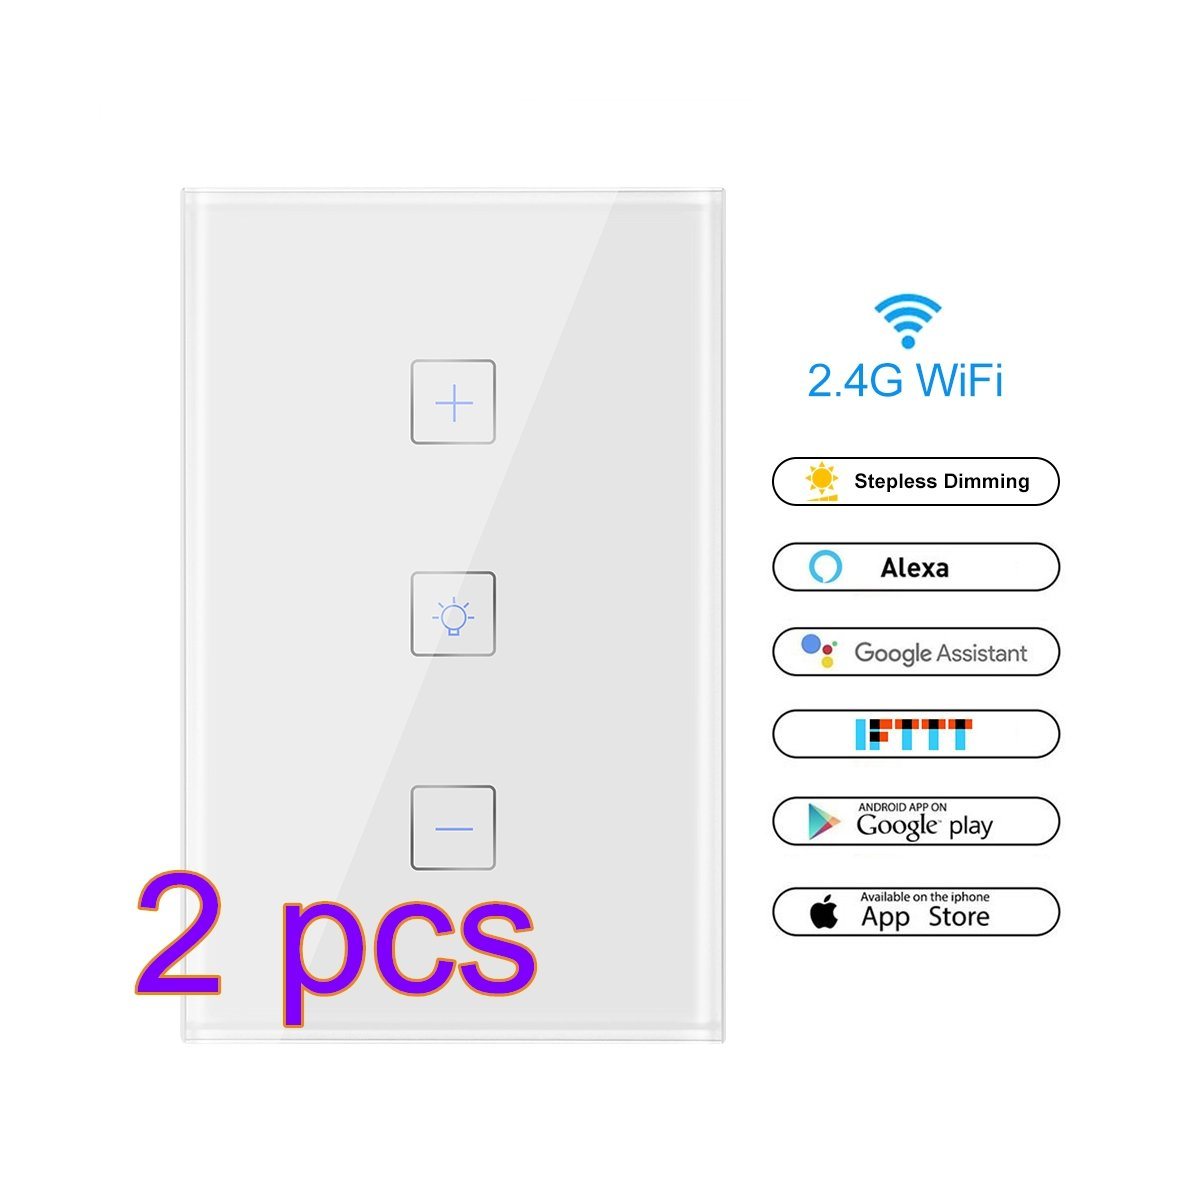 Smart Wi-Fi Light Dimmer Switch, ALLOMN In-wall Touch Light Switch on wall switch sensor, garage door diagram, wall switch parts, crane parts diagram, phone plug diagram, wall wiring home speakers, light switch diagram, switched receptacle diagram, wall switch battery, wall switch adjustment, wall switch circuit diagram, wall switch cover, wall switch installation, wall switch exploded view, wall switch remote control, wall timer switch diagram, wall socket wiring, wall switch dimensions, wall switch thermostat, wall wall switch wireing,